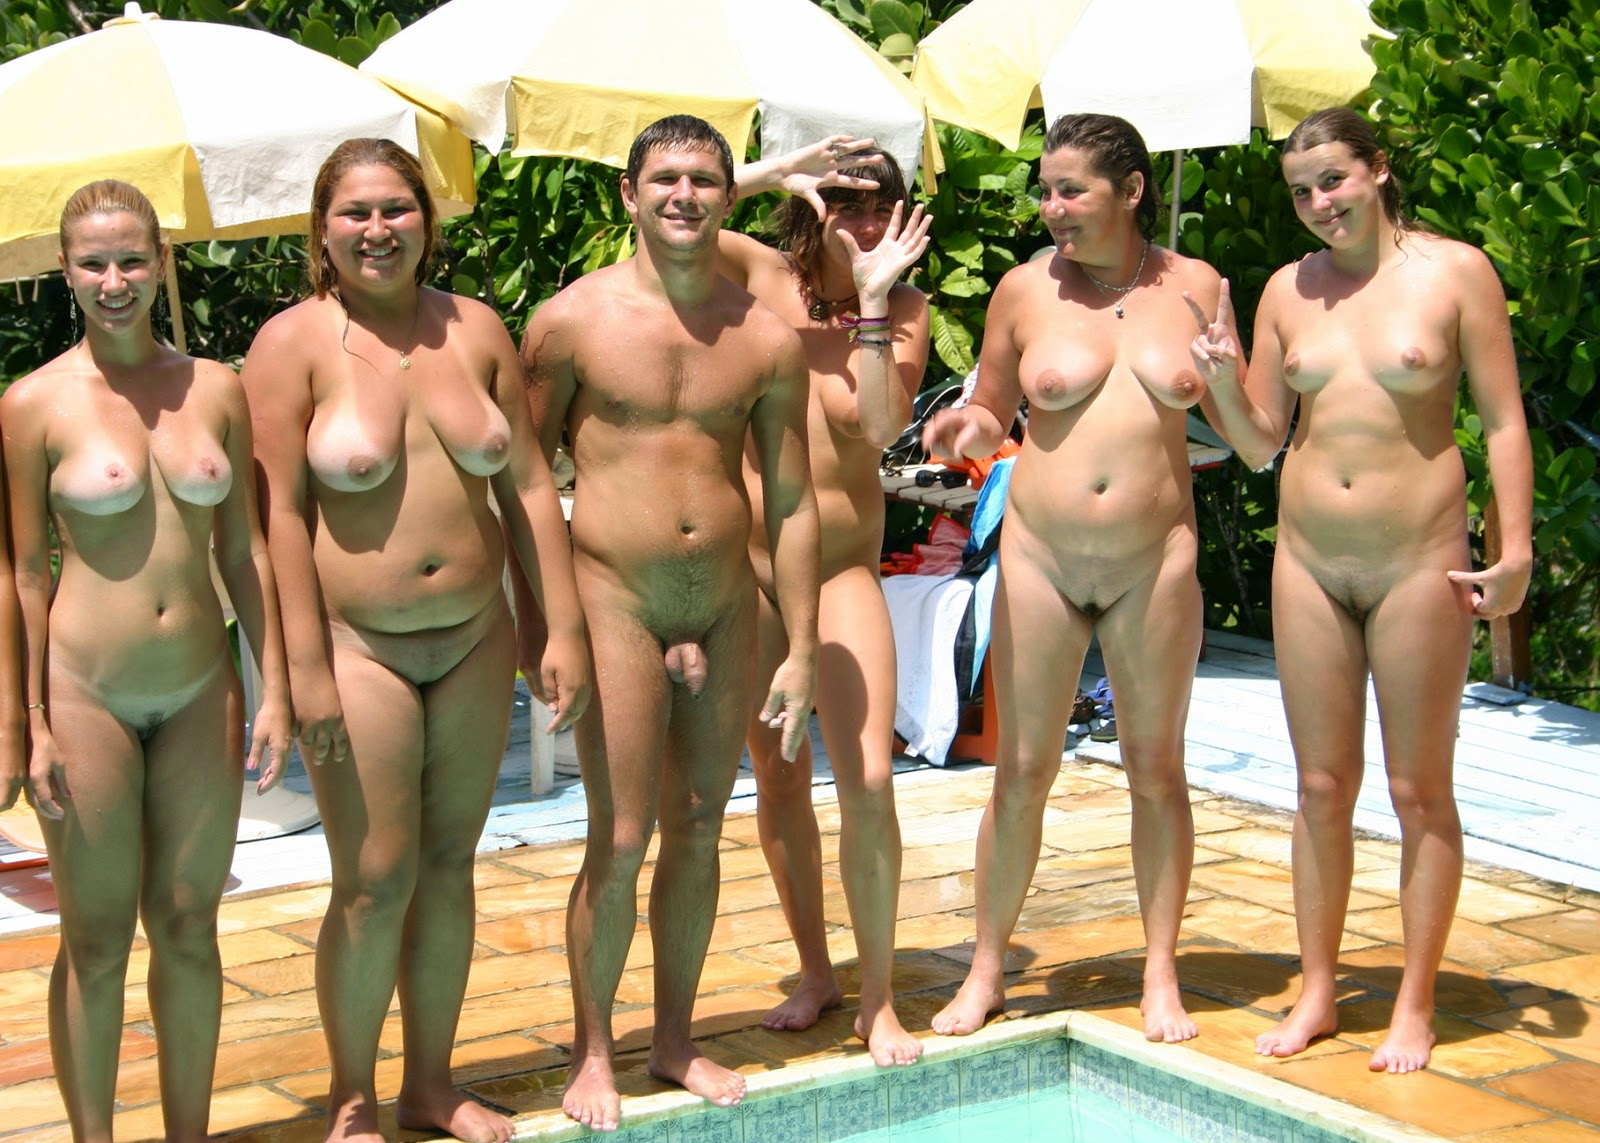 Euro family nudist video your place